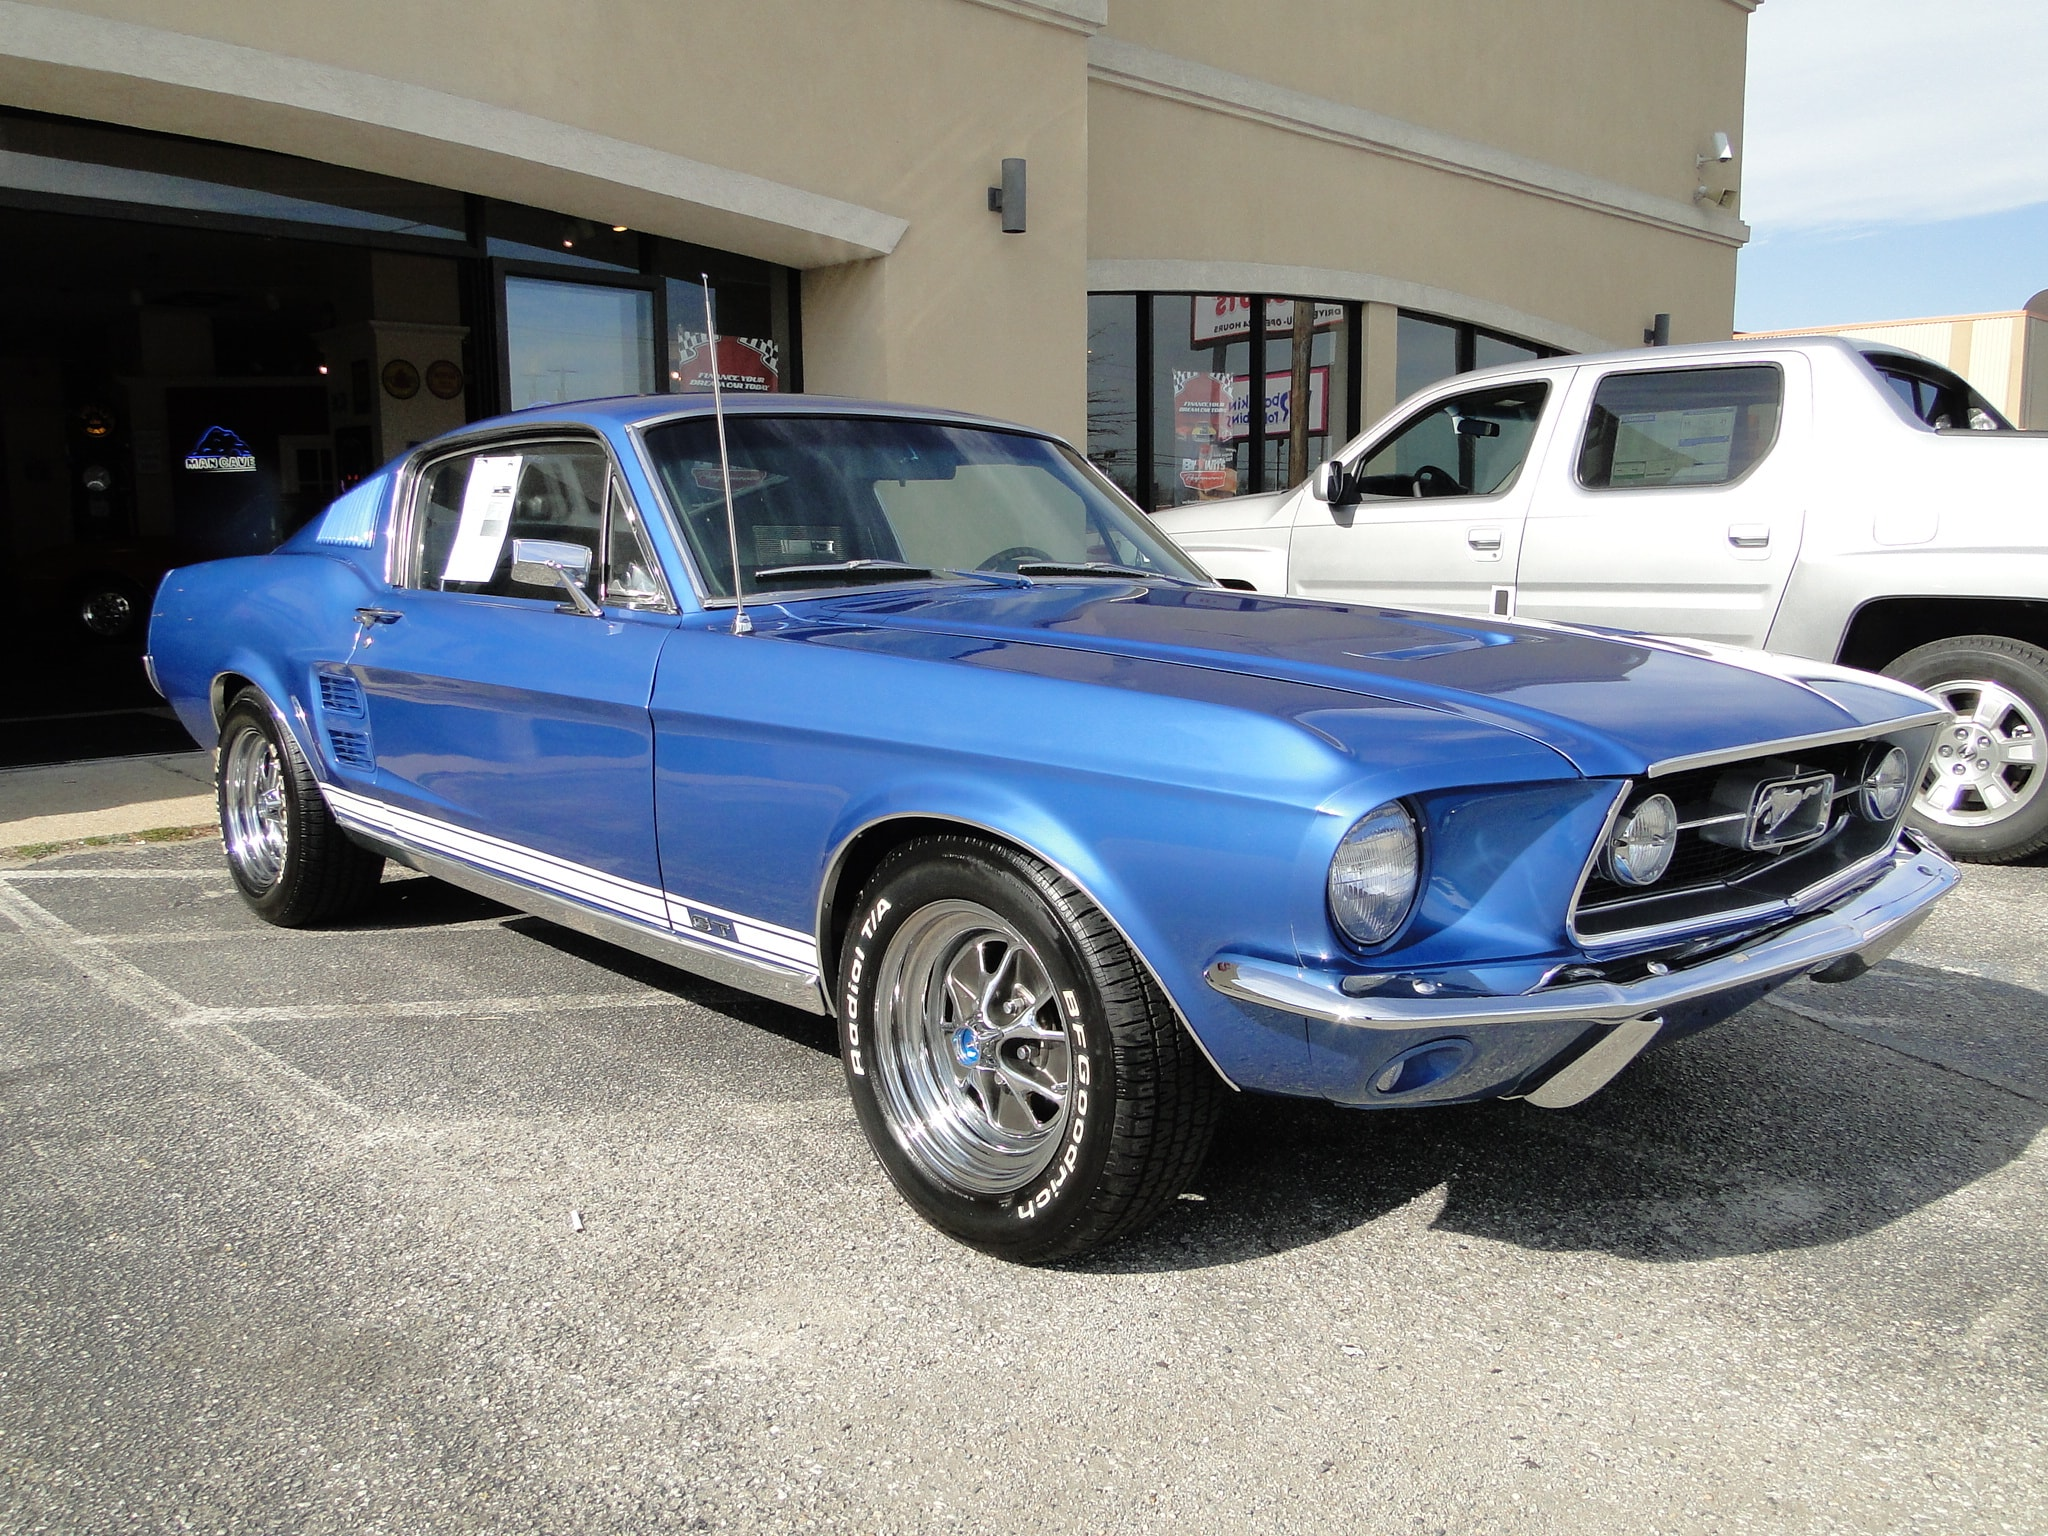 used 1967 ford mustang for sale glen burnie md. Black Bedroom Furniture Sets. Home Design Ideas